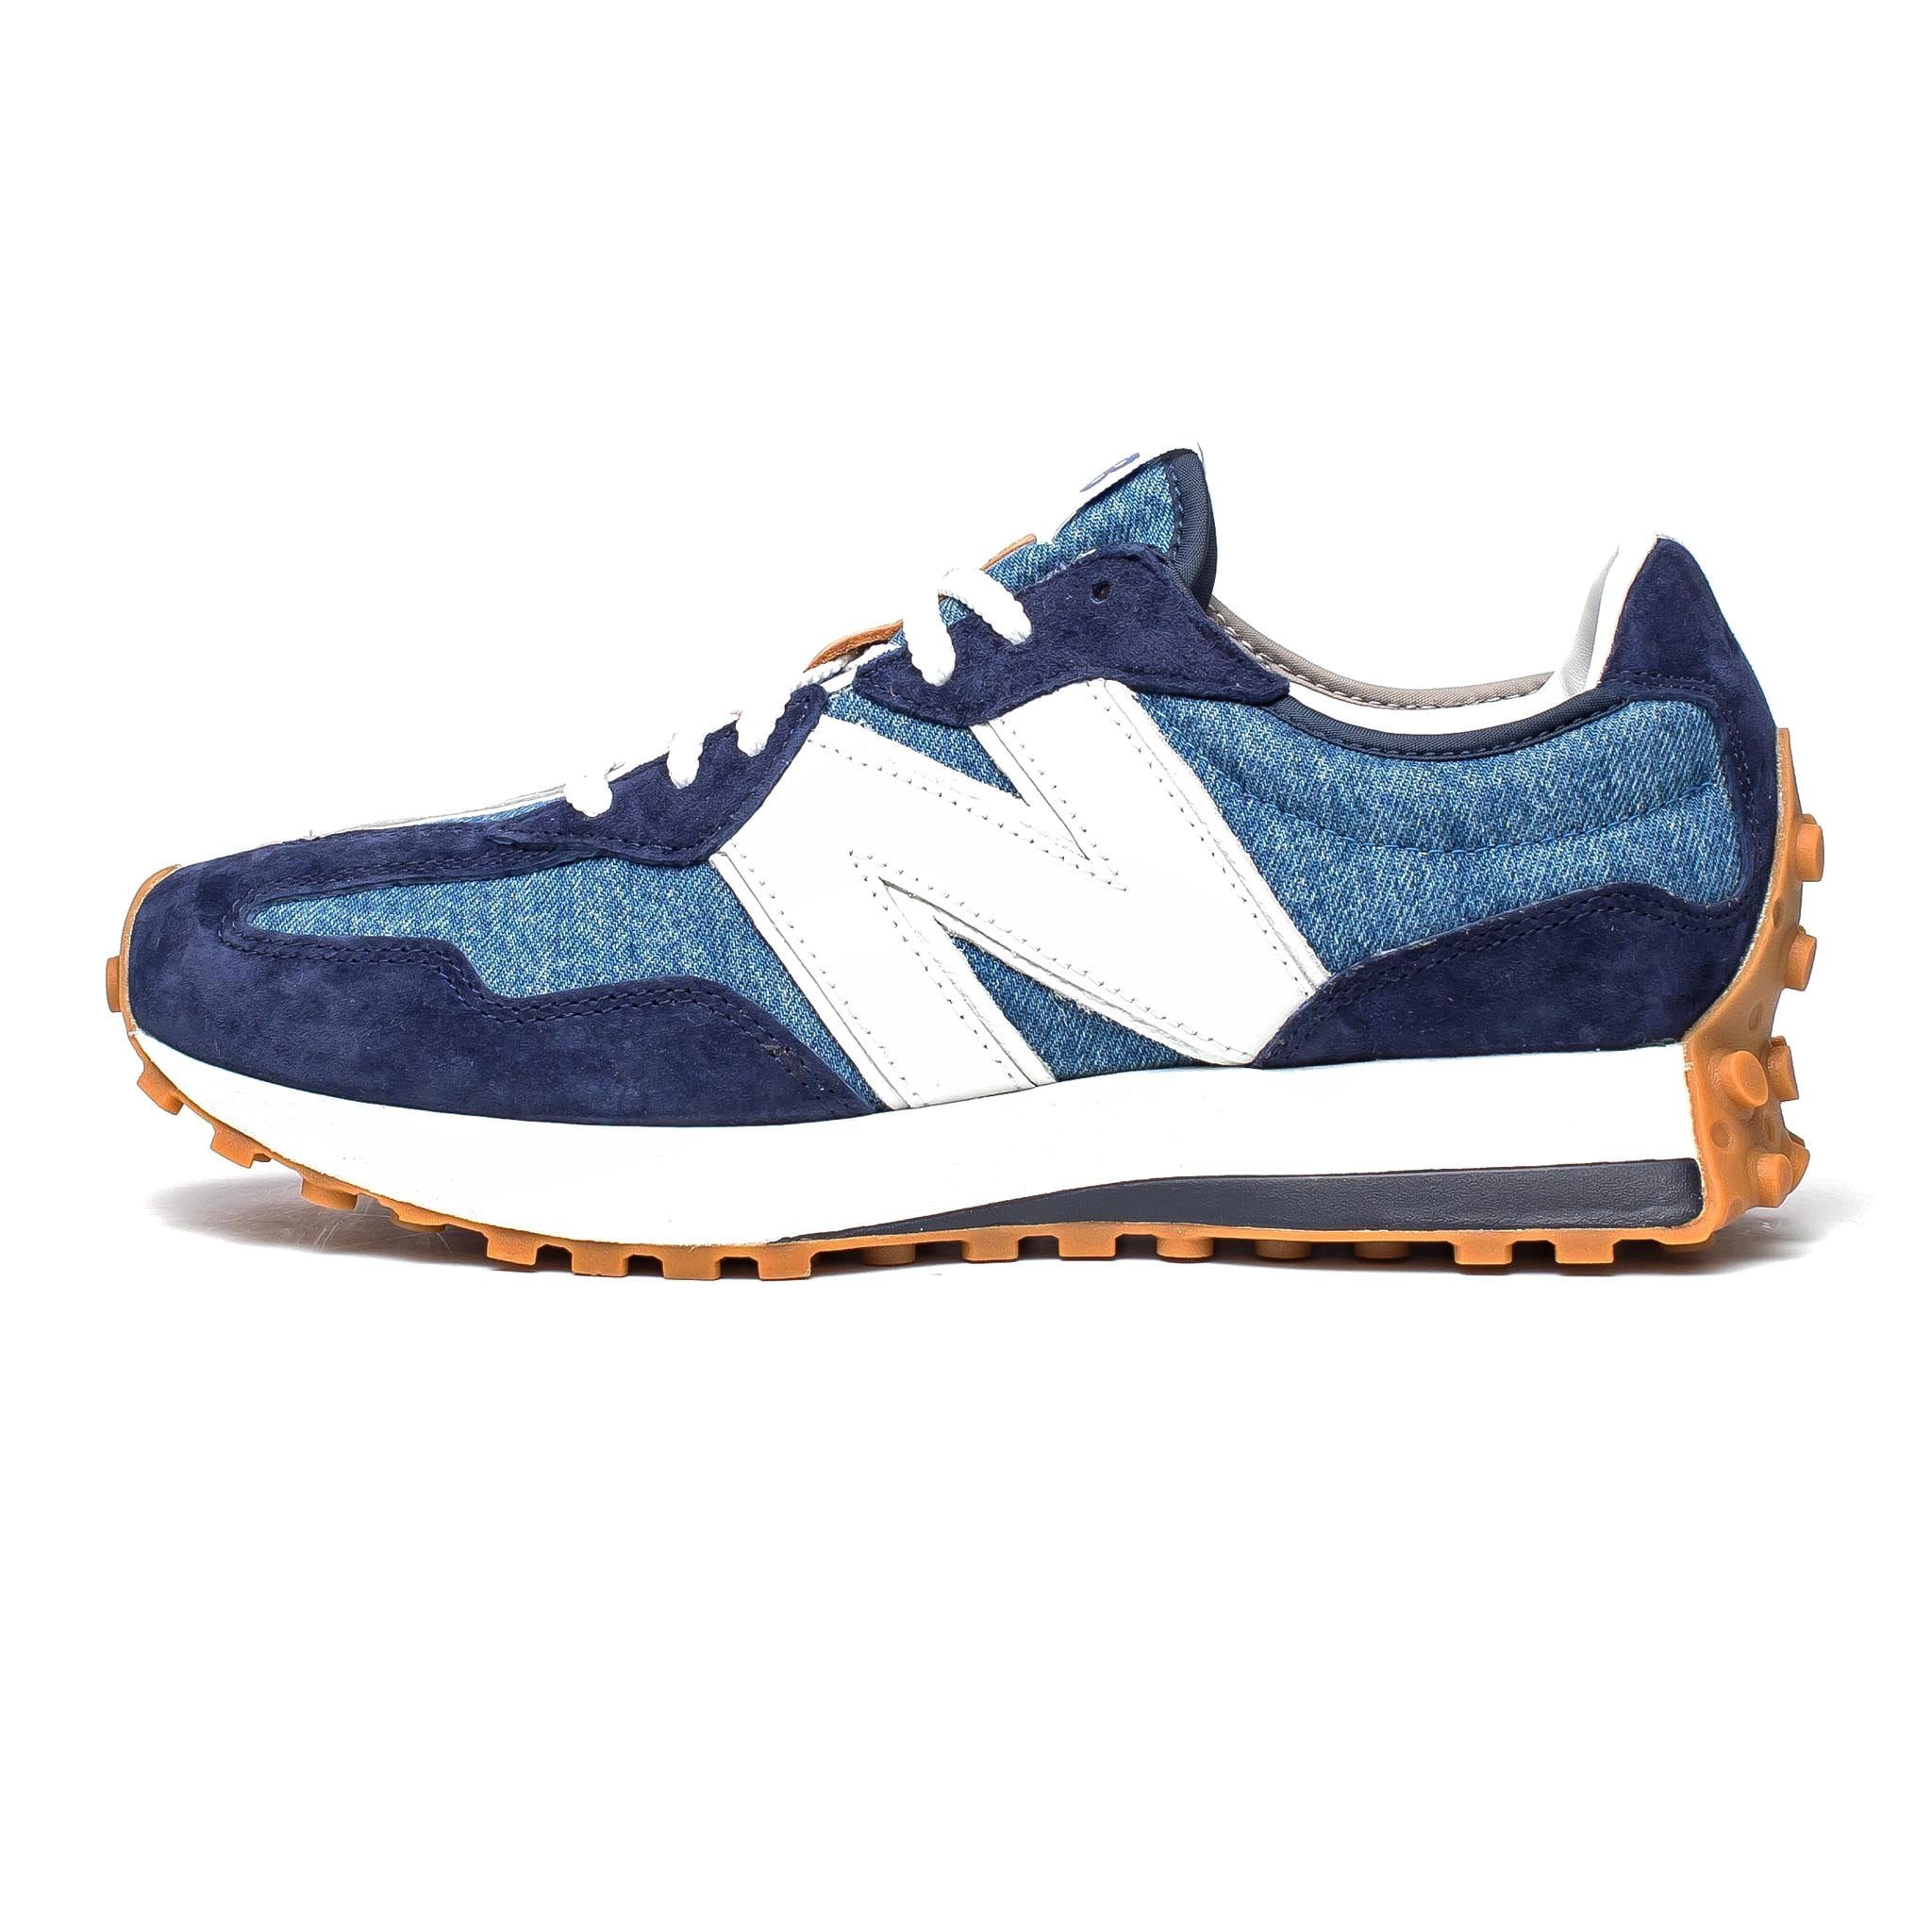 New Balance x Levi's MS327LVA Navy/Indigo/Grey